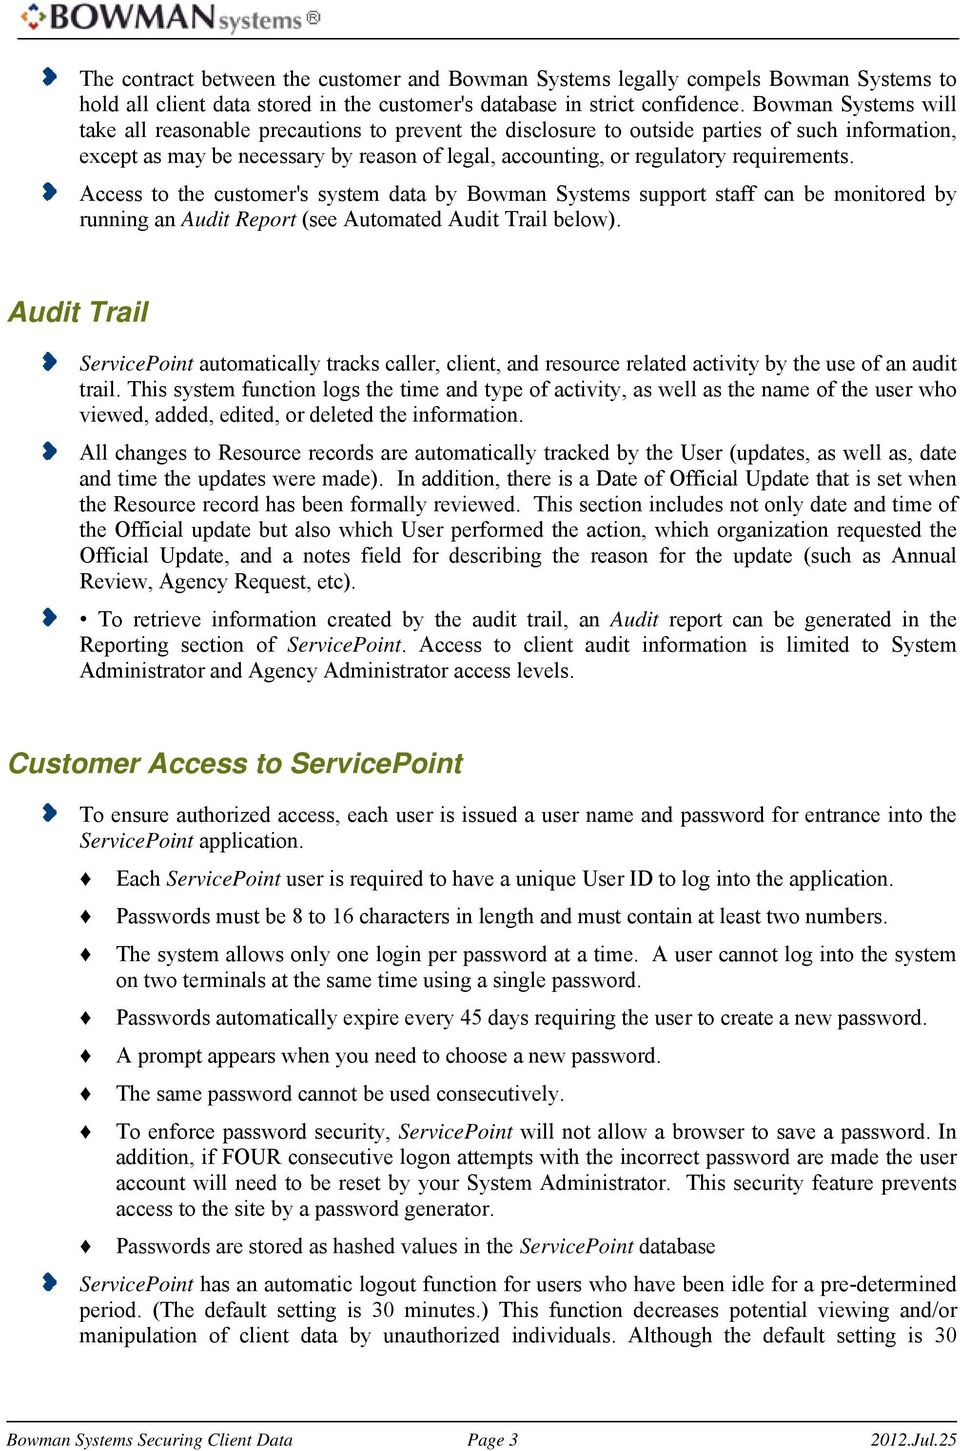 requirements. Access to the customer's system data by Bowman Systems support staff can be monitored by running an Audit Report (see Automated Audit Trail below).